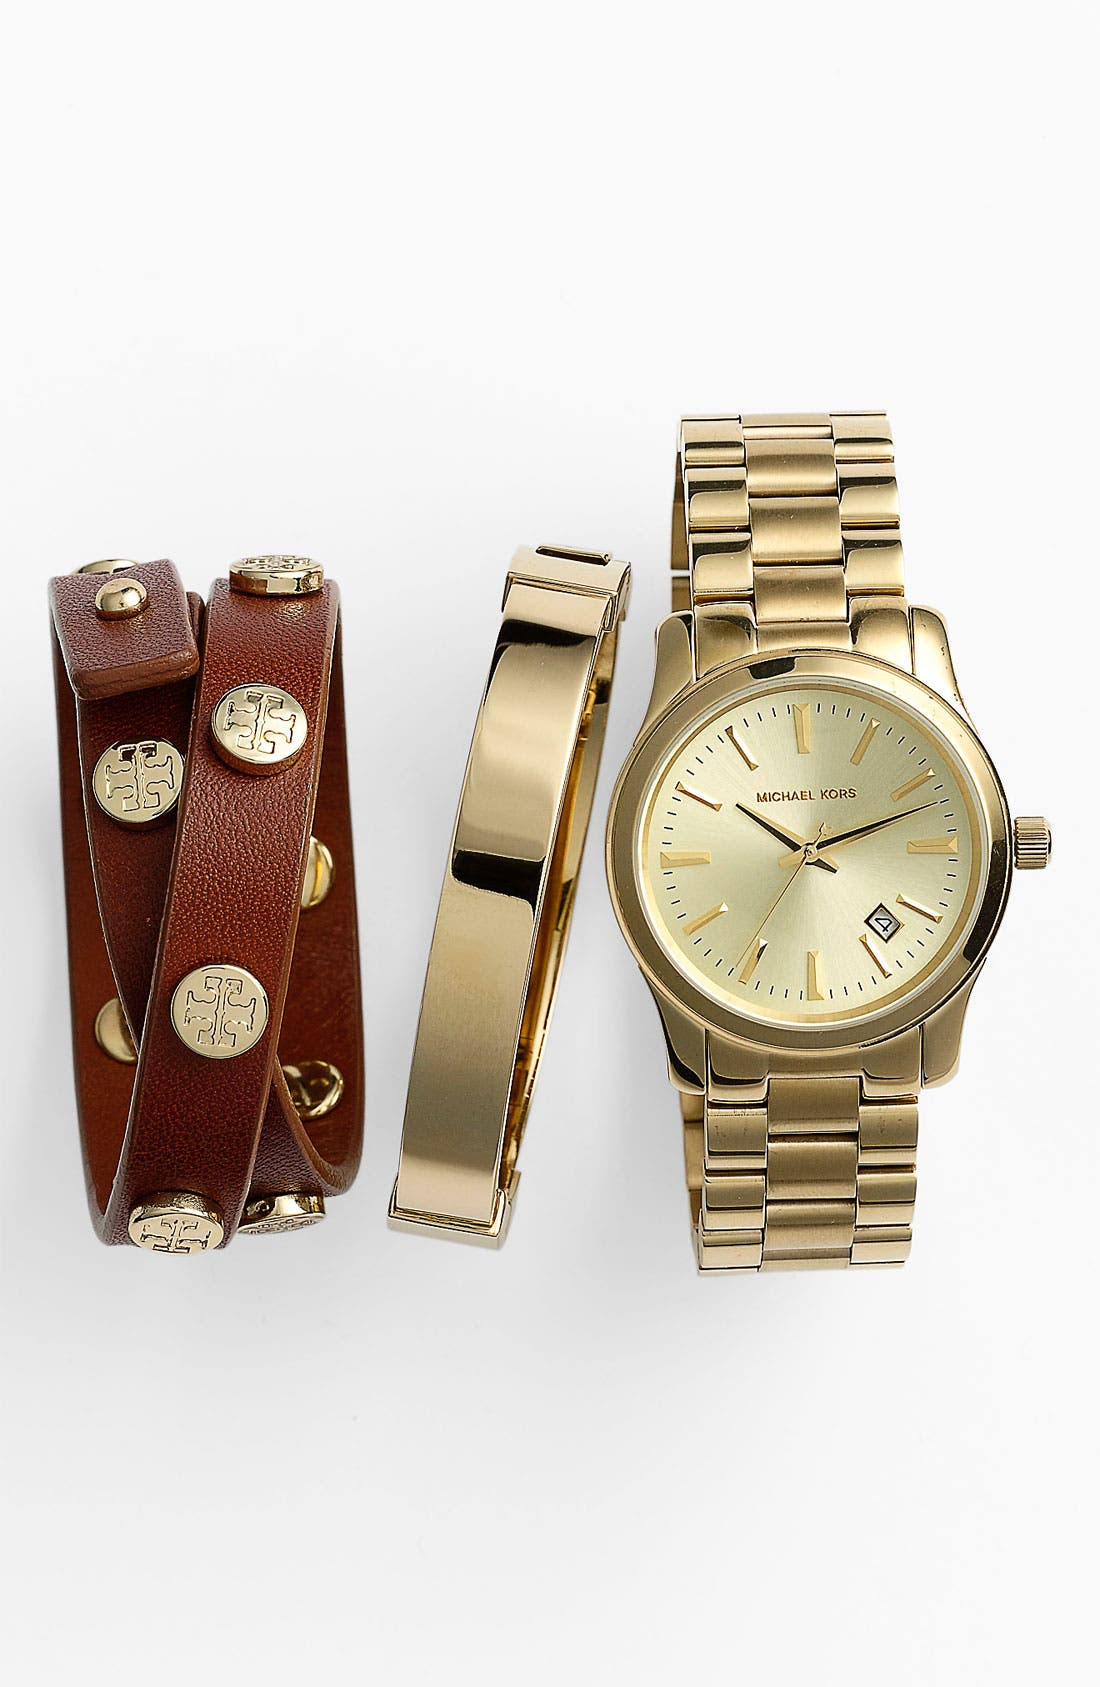 Main Image - Michael Kors Watch & Tory Burch Bracelet